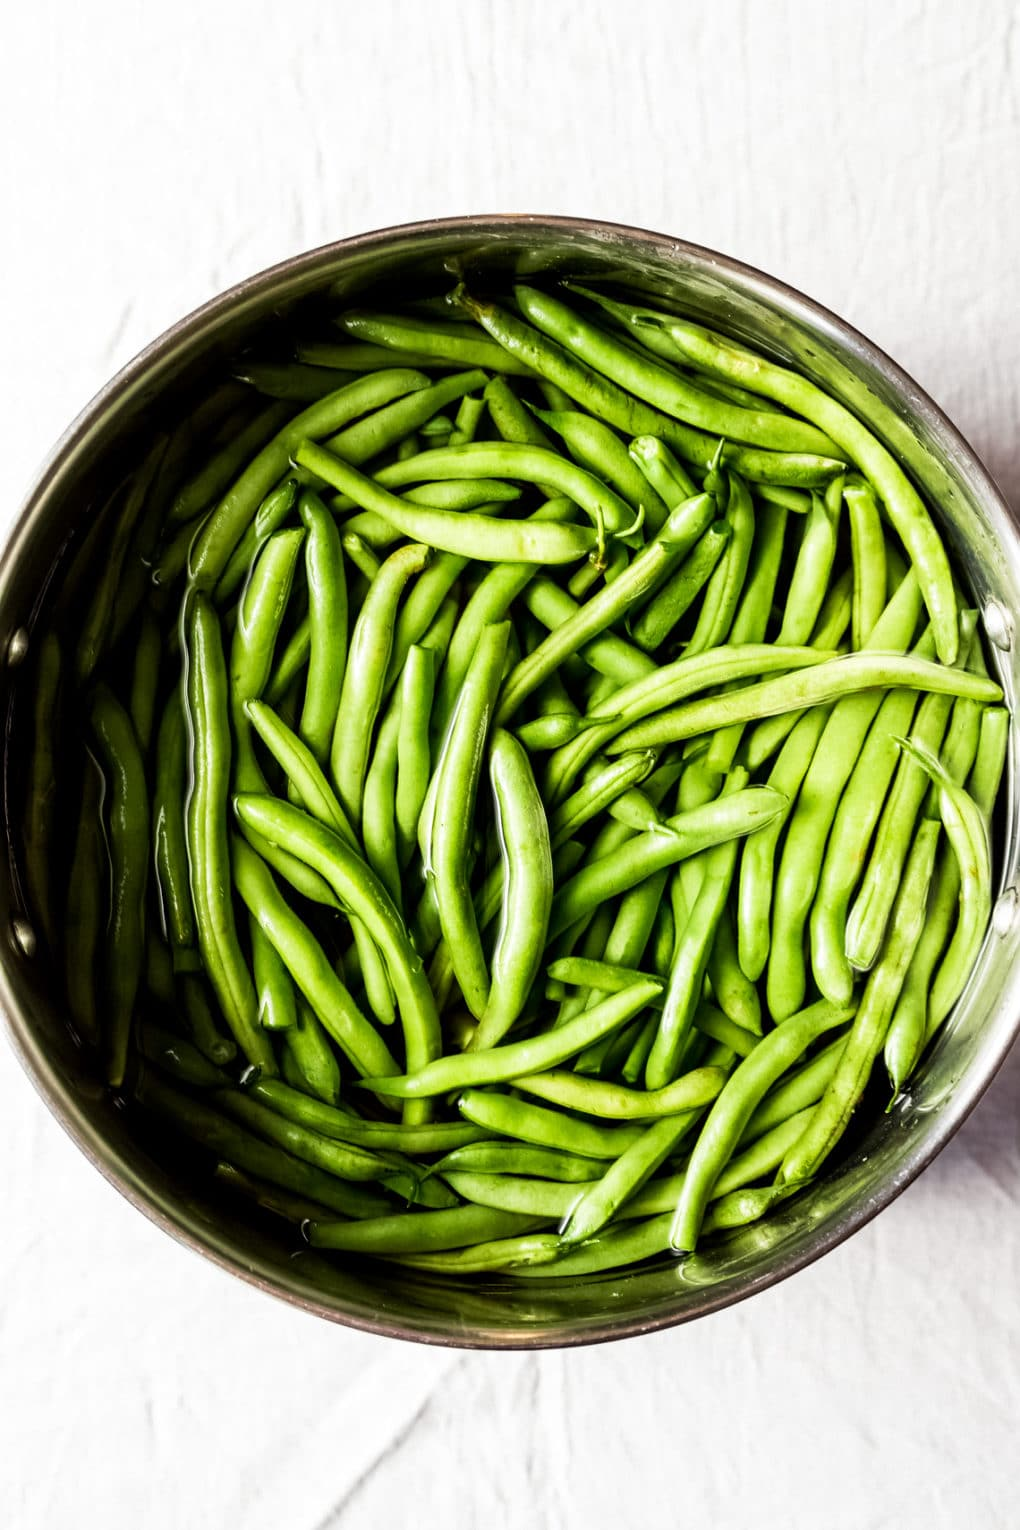 a stock pot of green beans in water